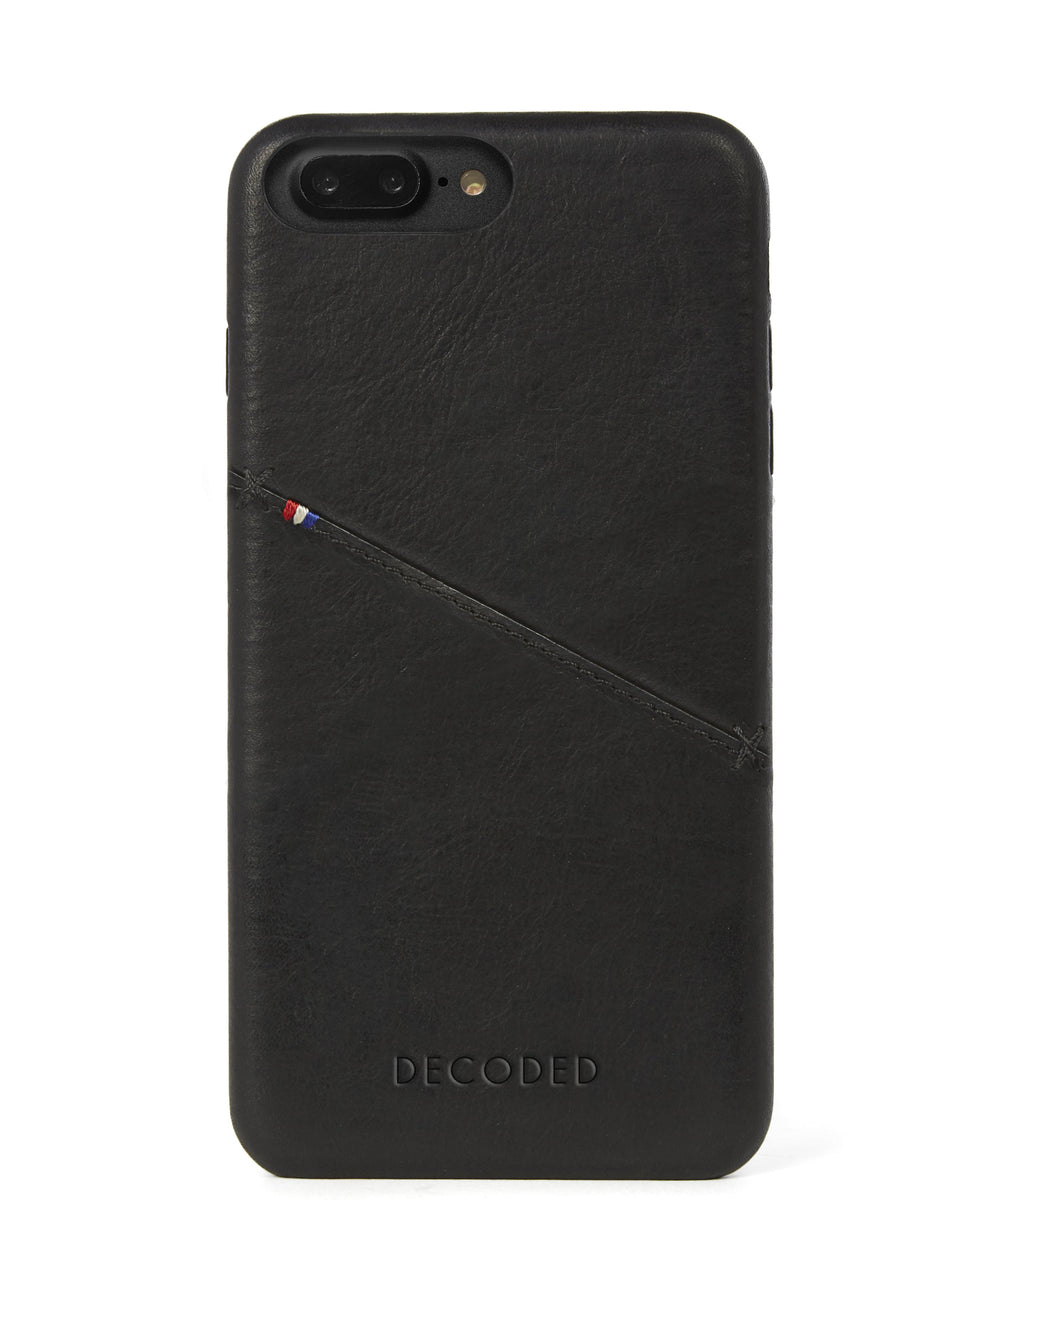 Back Cover Card Case Black - iPhone 6s / 6 Plus